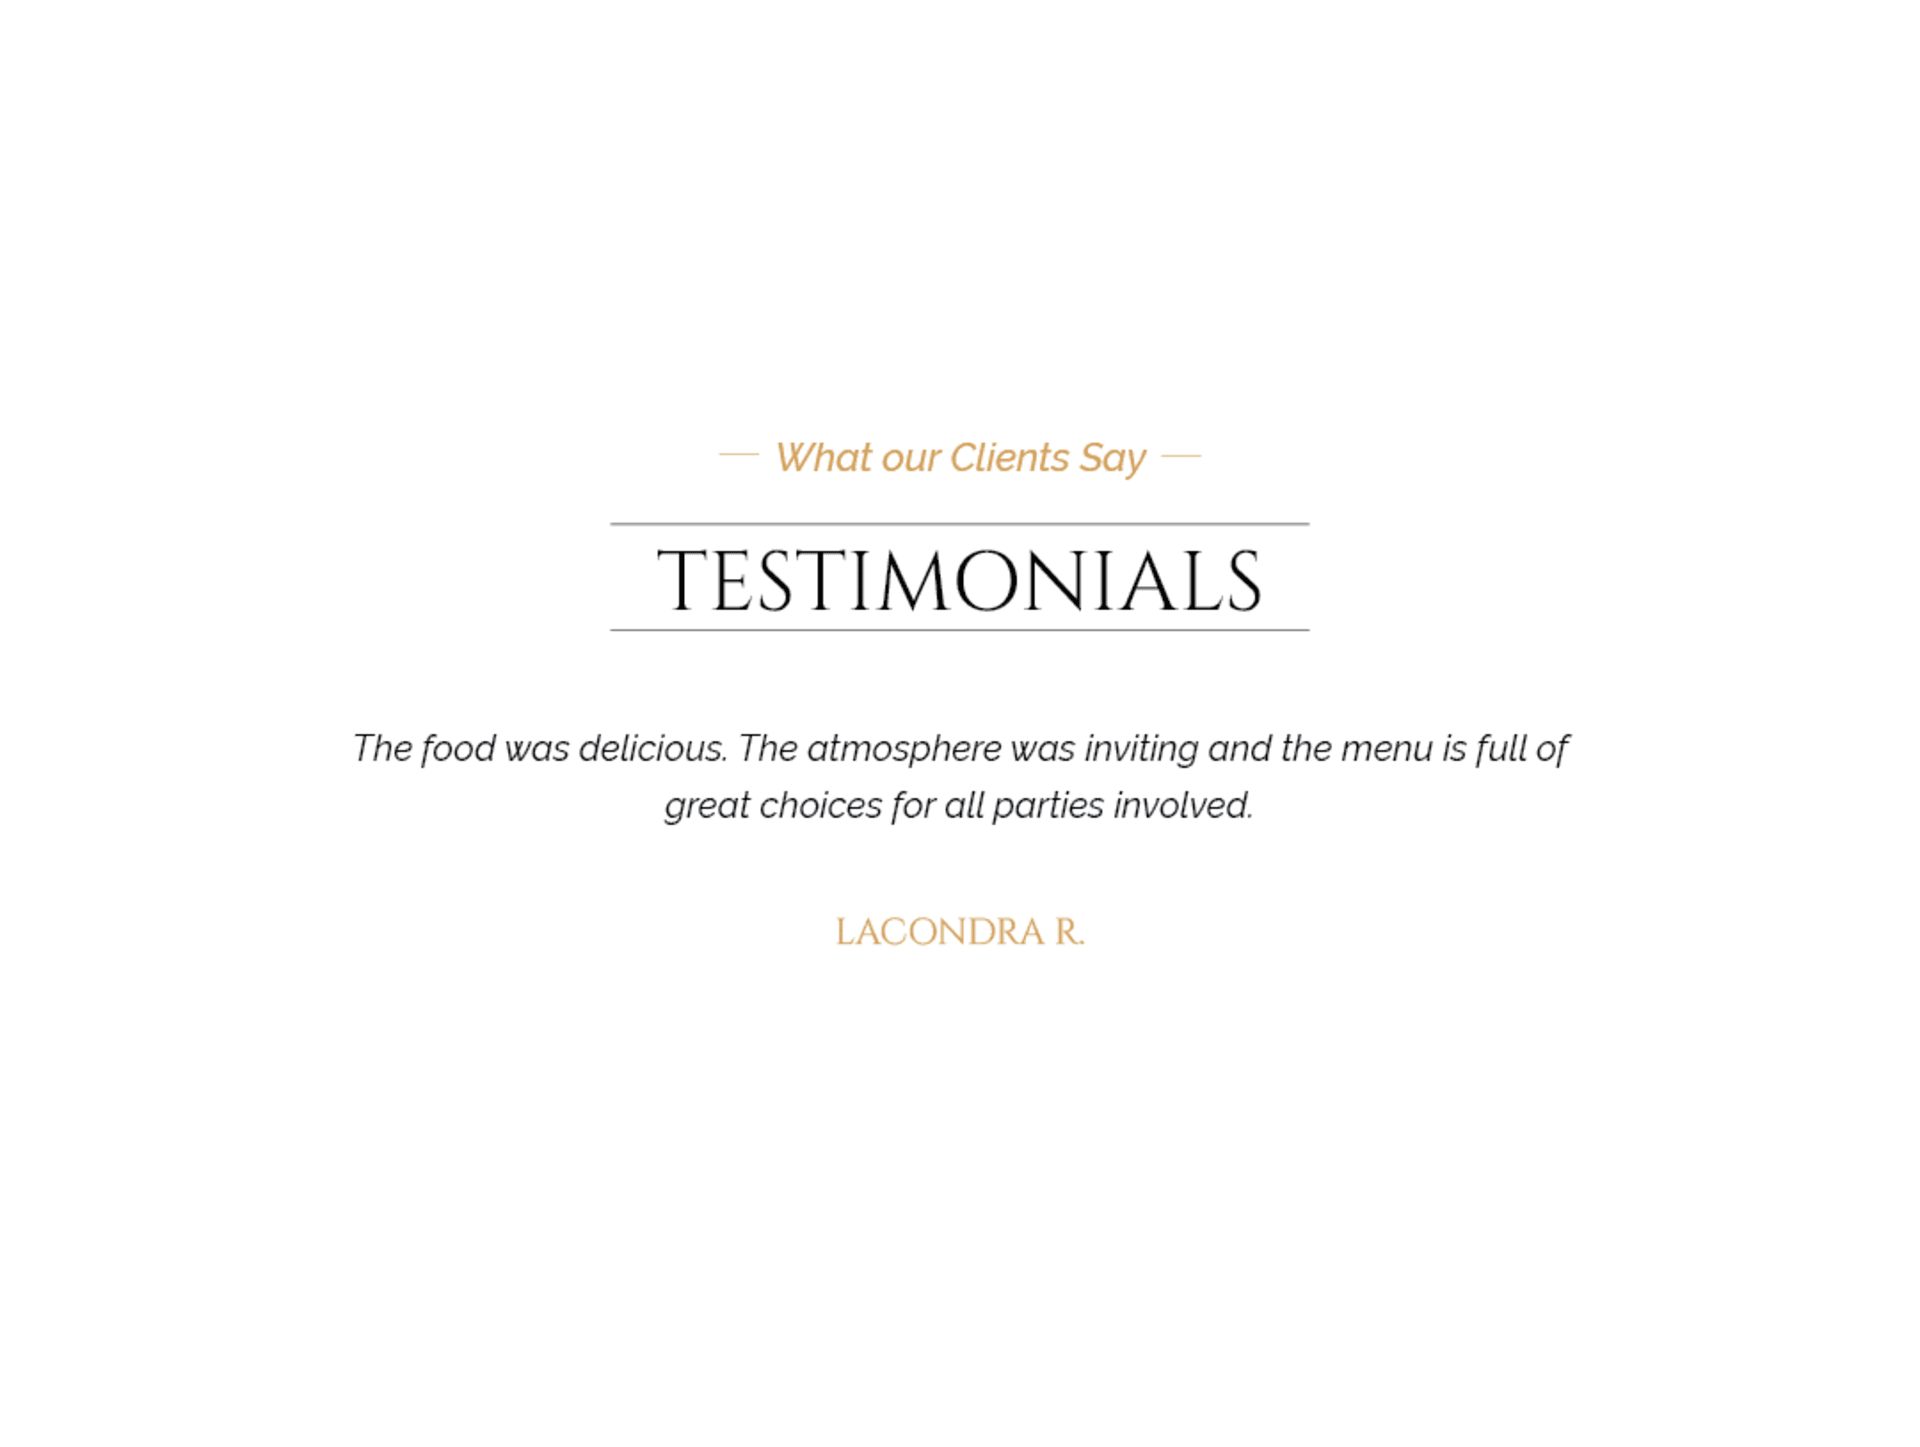 Client testimonial: The food was delicious. The atmosphere was inviting and the menu is full of great choices for all parties involved. From Lacondra R.